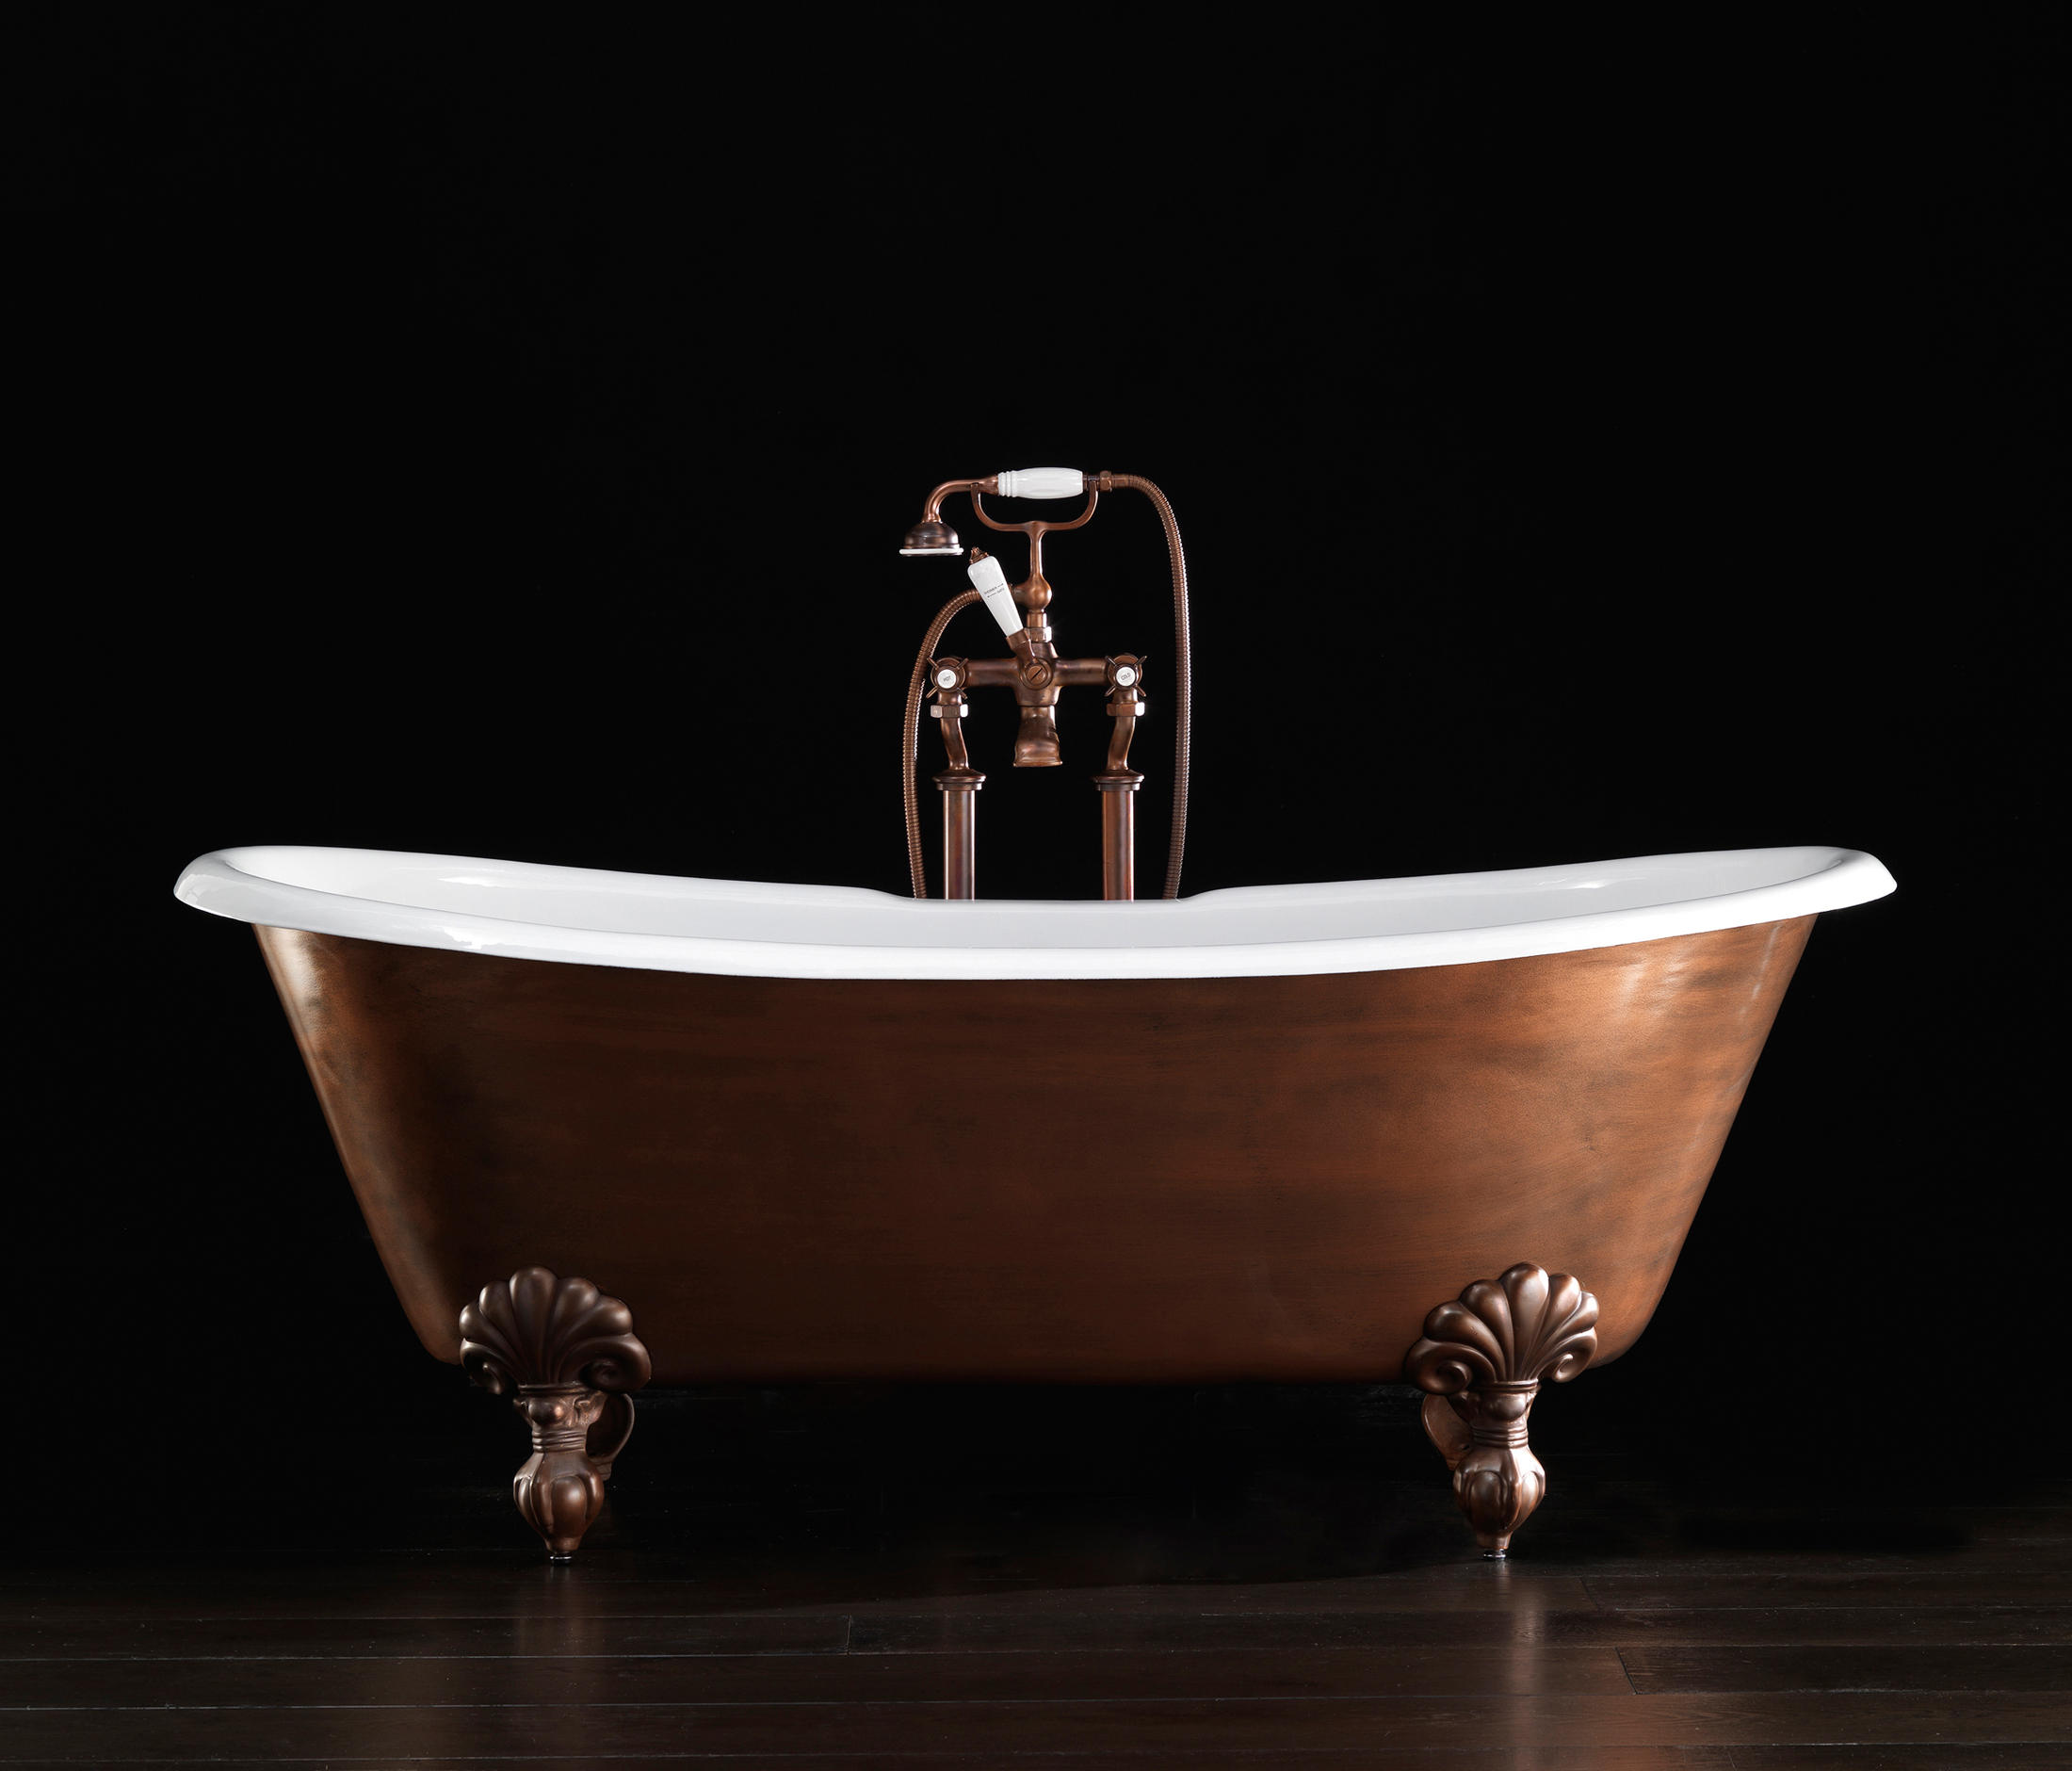 ADMIRAL COPPER EFFECT BATHTUB - Bathtubs from Devon&Devon | Architonic